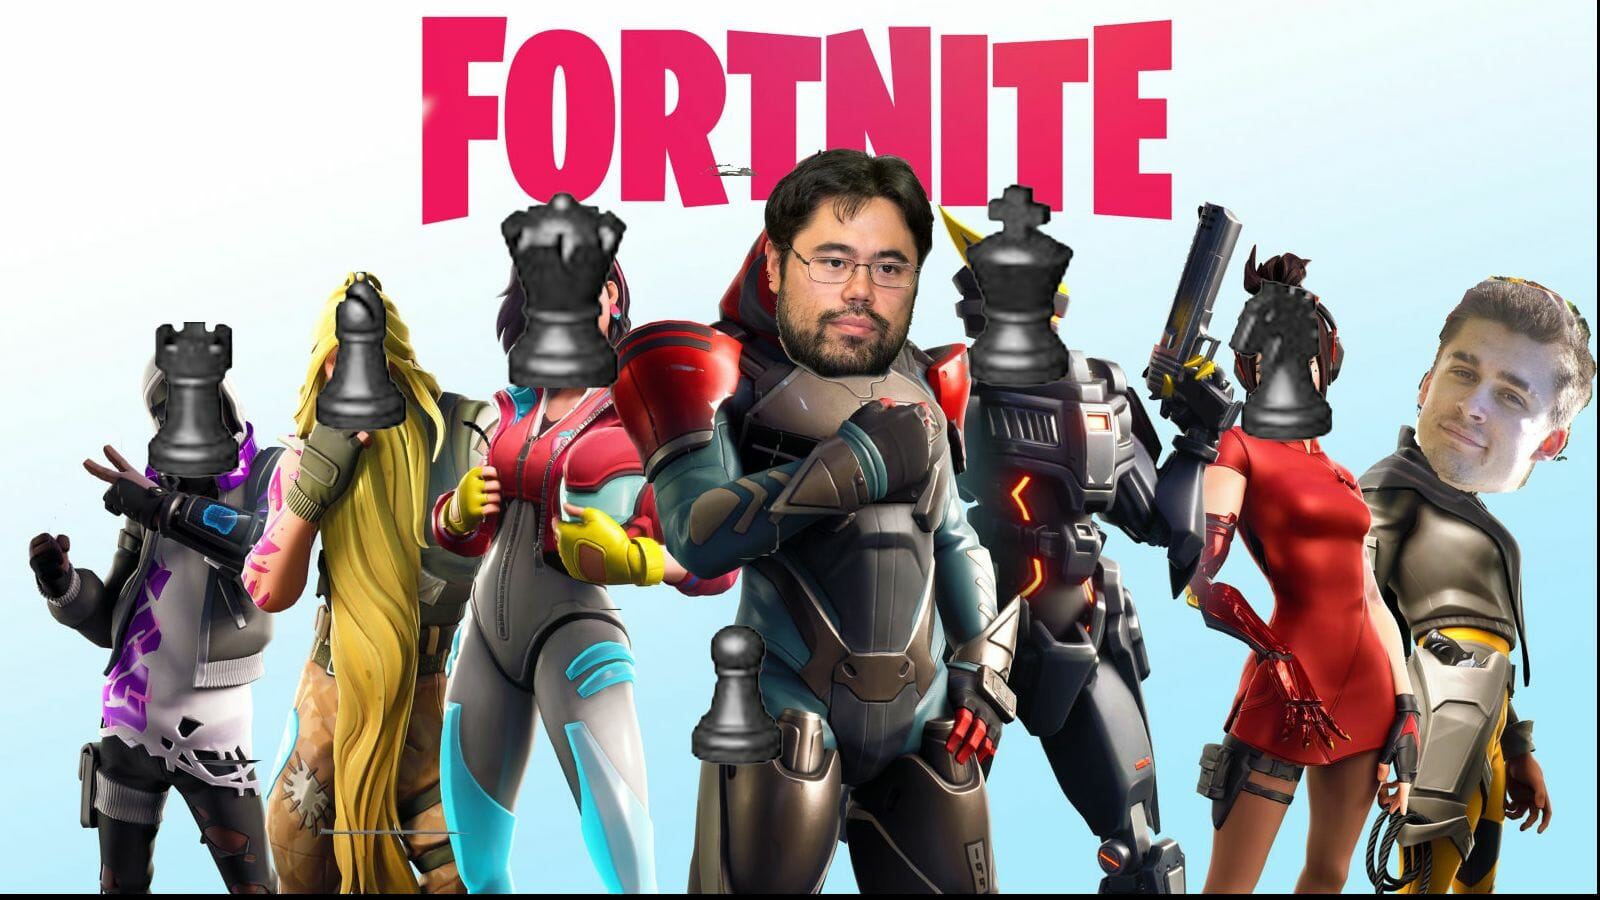 Is chess the new fortnite?